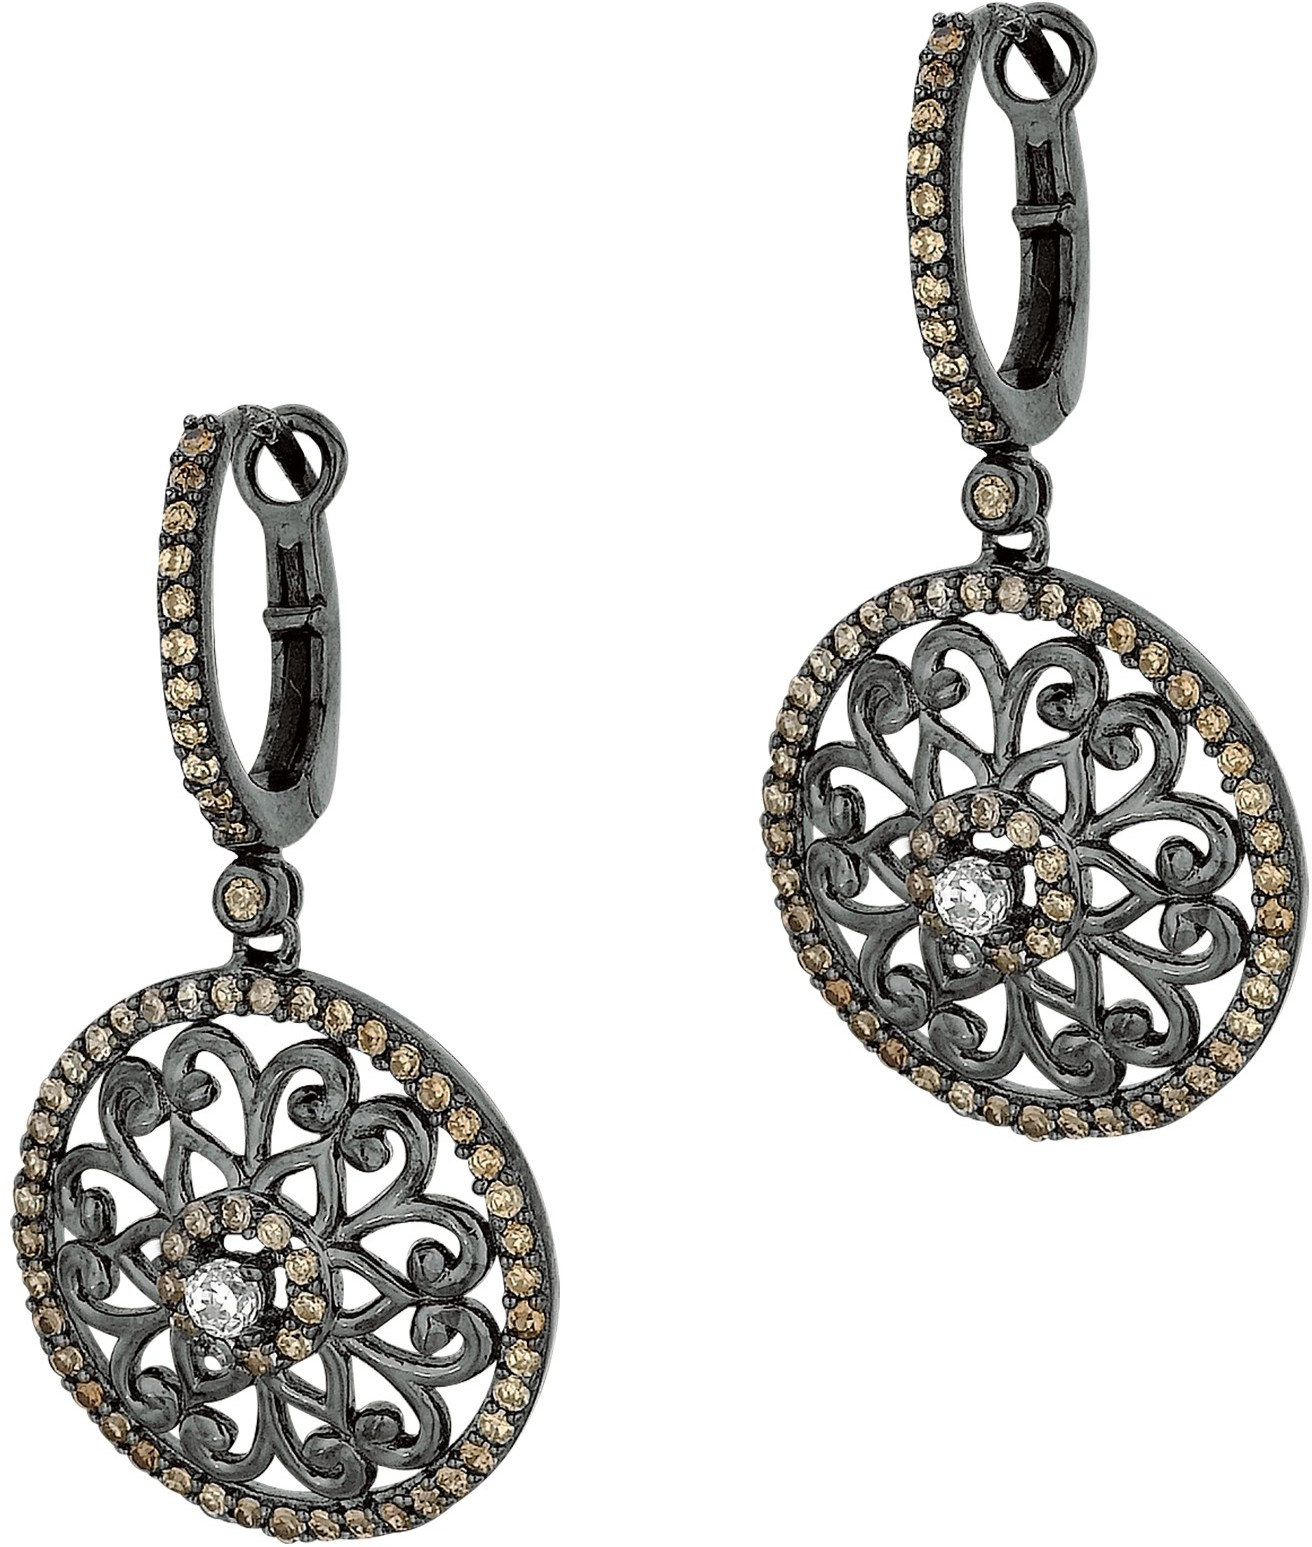 Silver Black Ruthenium Finish Textured Round Fancy Drop Earrings w/ Coffee & White Cubic Zirconia (CZ) - DISCONTINUED